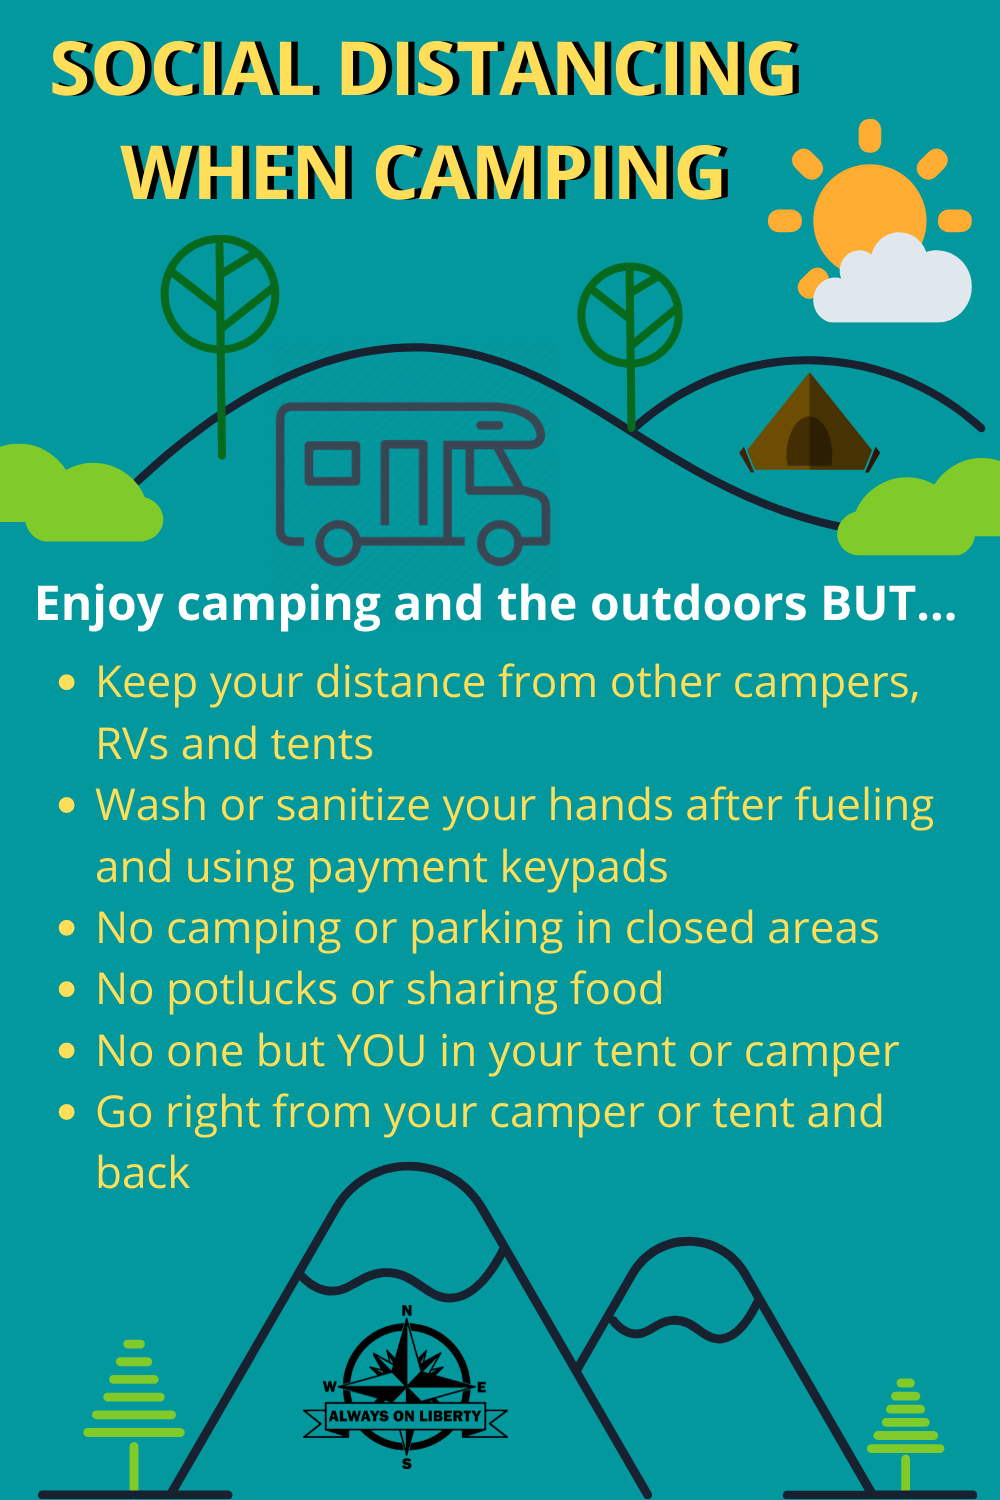 How To Social Distance At Campgrounds Social Distancing Camping Tips Rv Parks And Campgrounds Boondocking Rv Parks